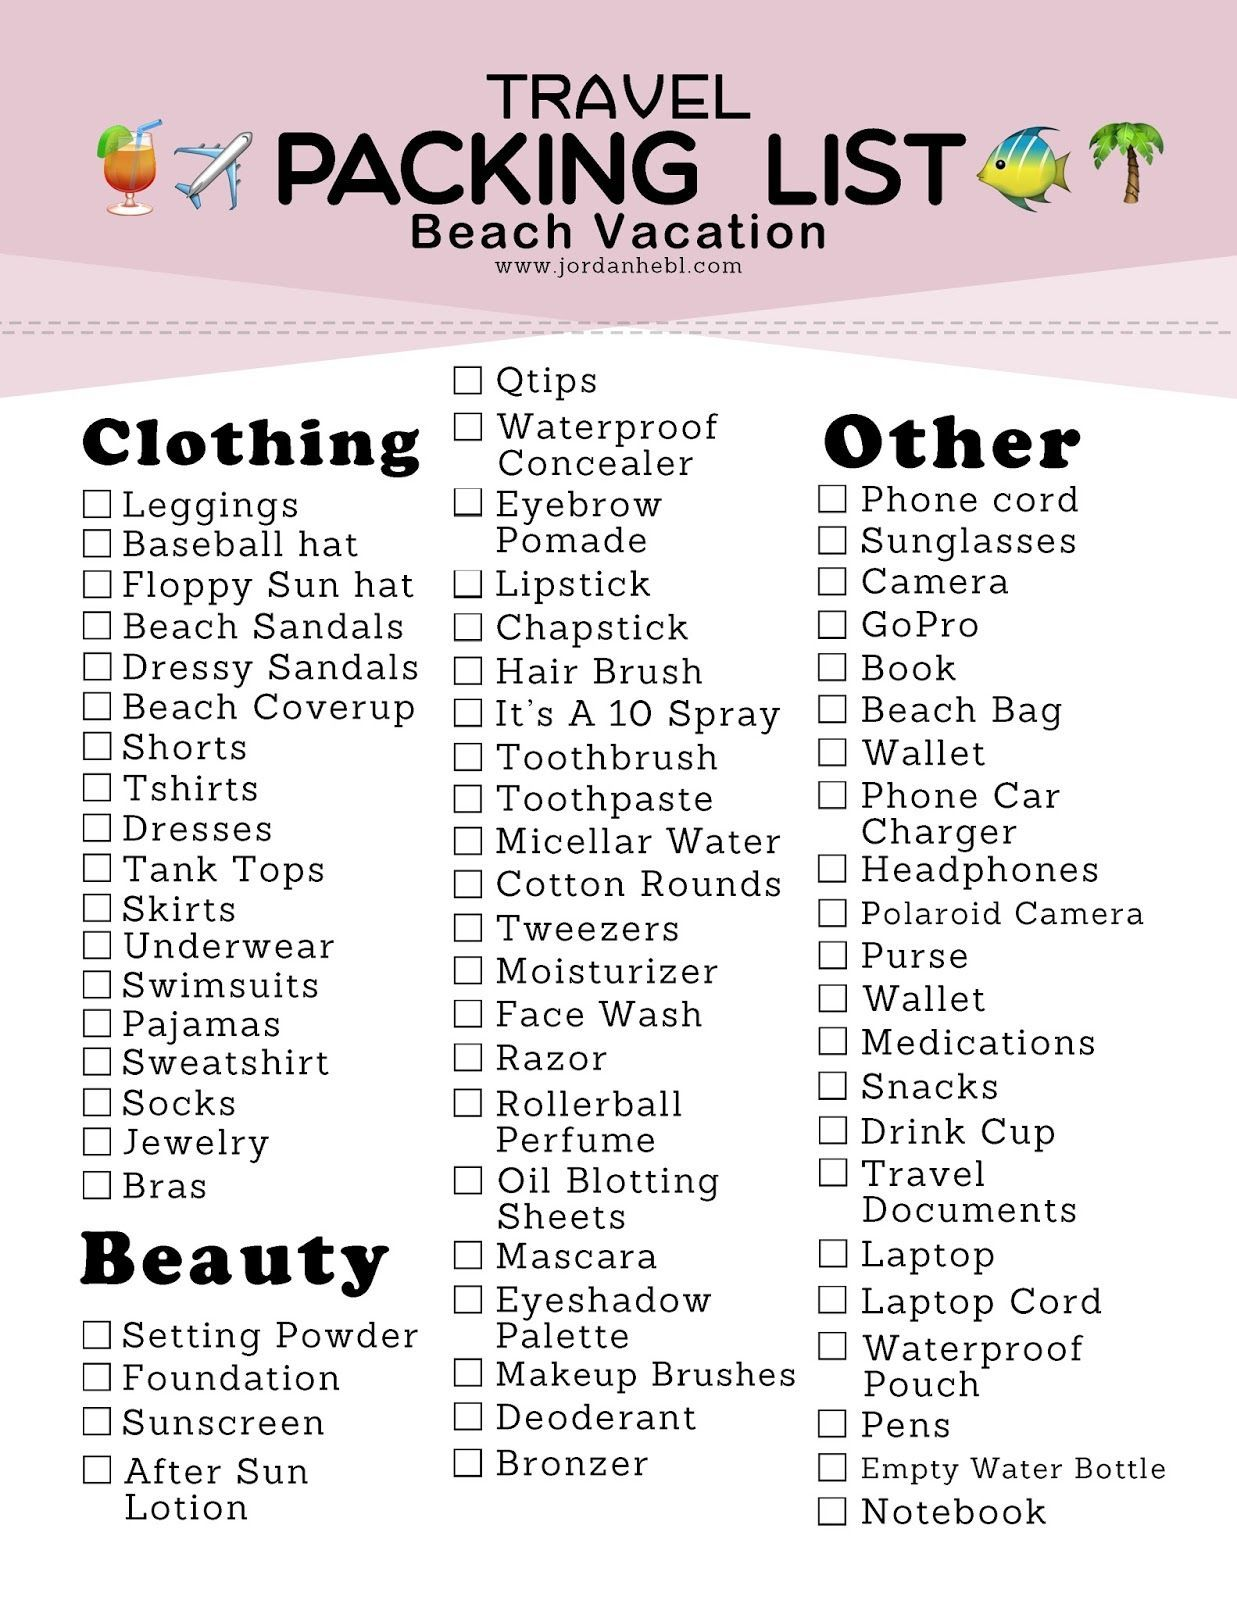 Packing List For A Beach Vacation Free Printable In